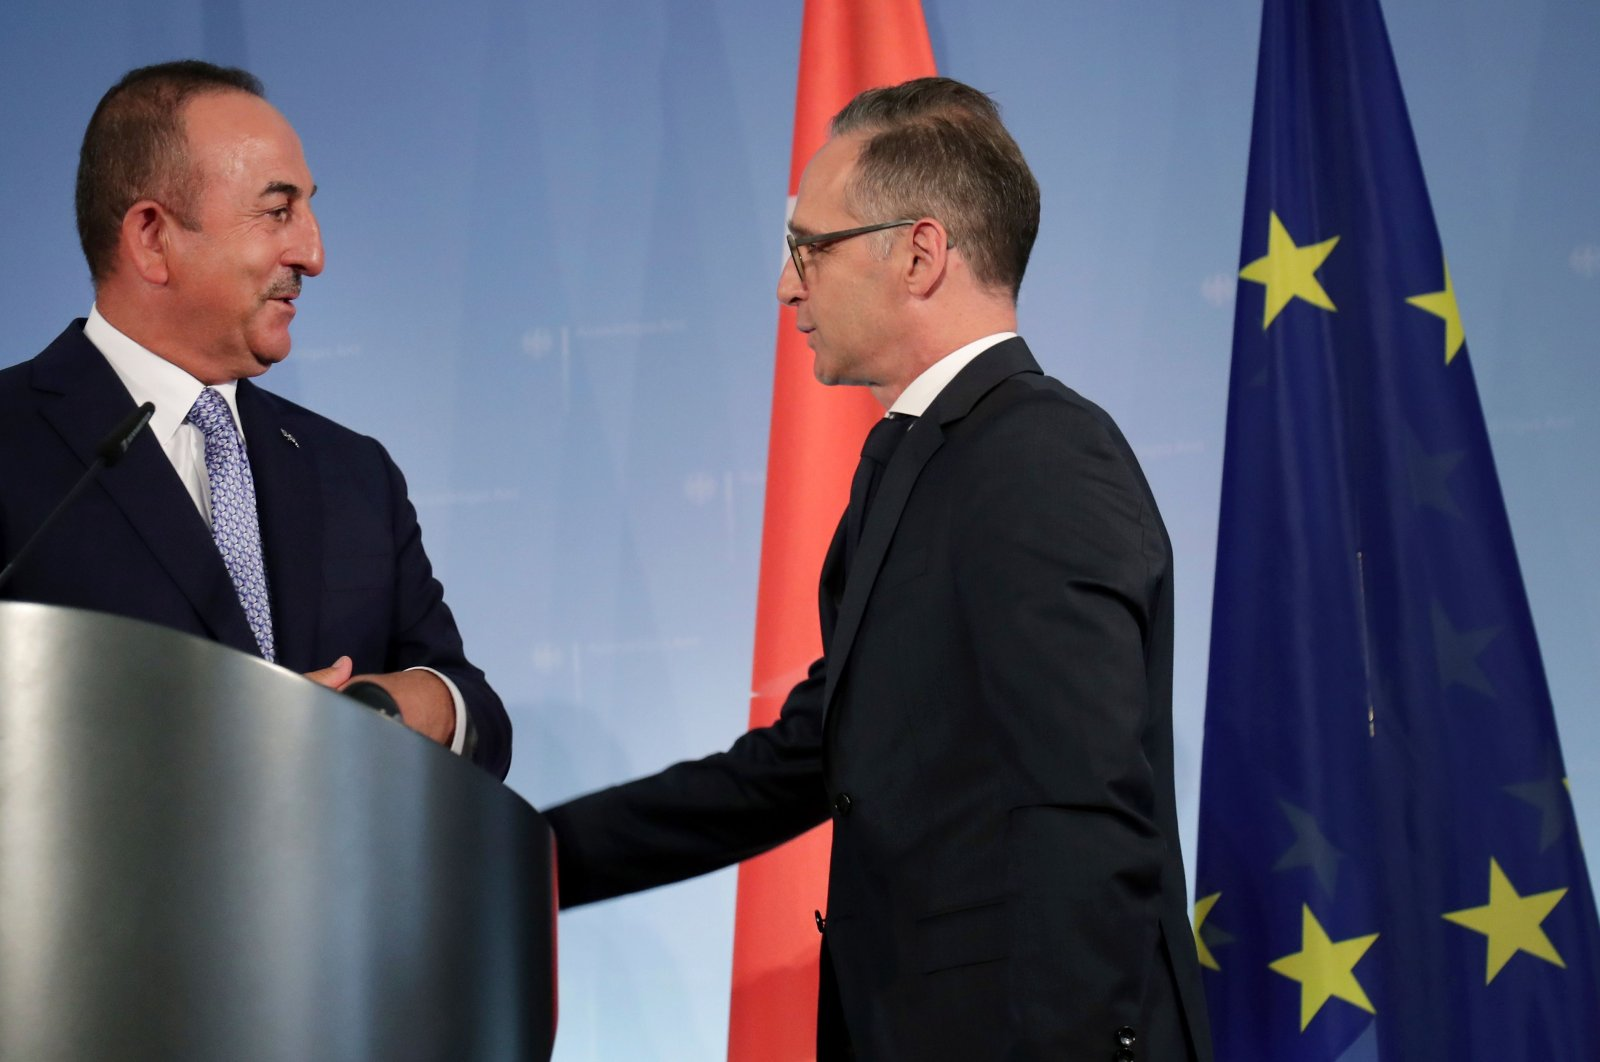 Foreign Minister Mevlüt Çavuşoğlu and his German counterpart Heiko Maas leave after a press conference in Berlin, July 2, 2020. (AFP Photo)